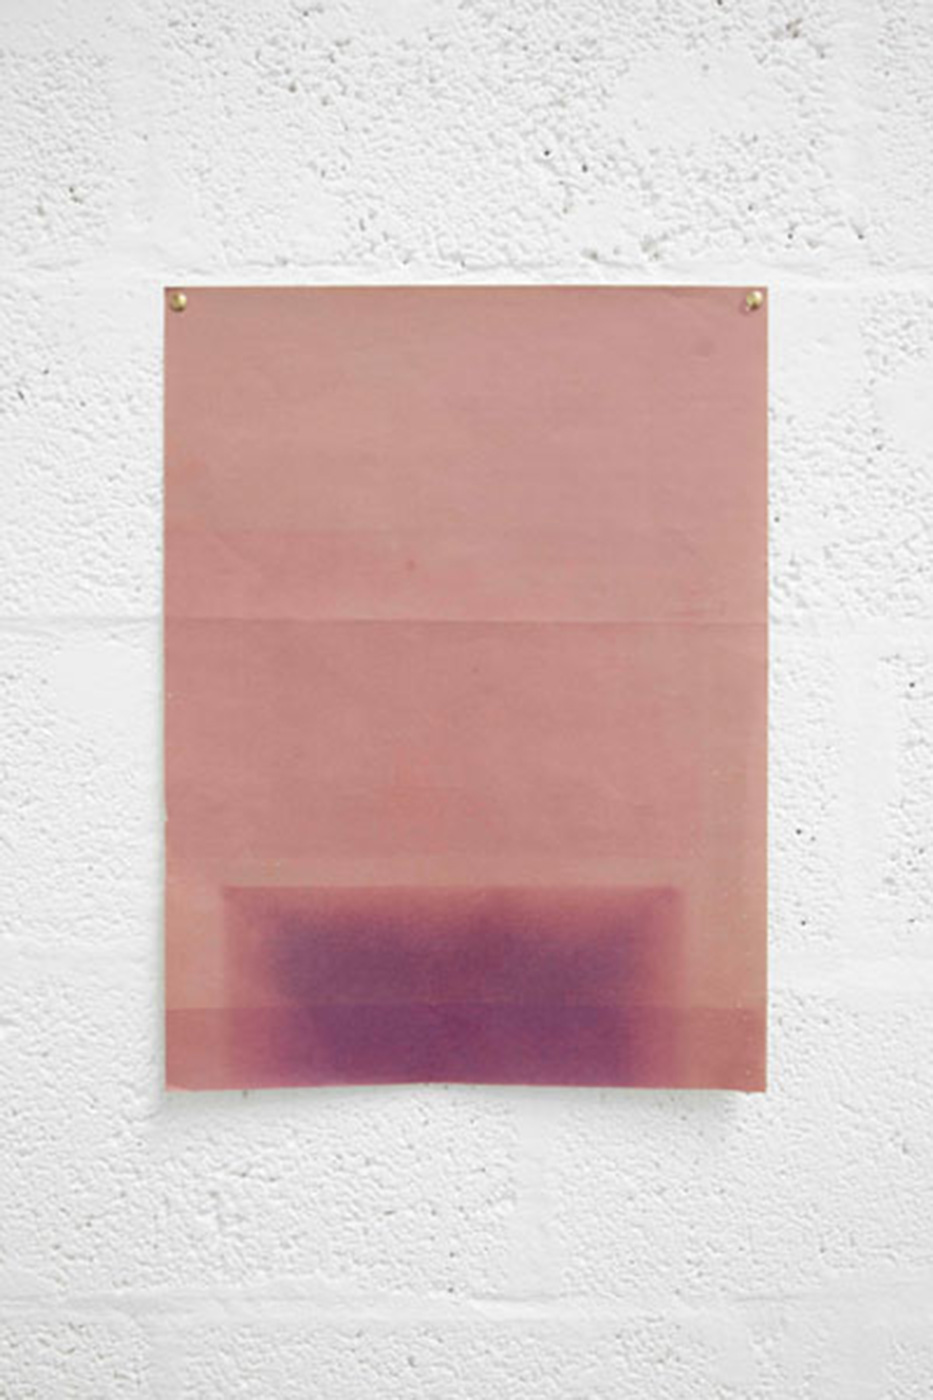 Faded Paper 44s, 2011